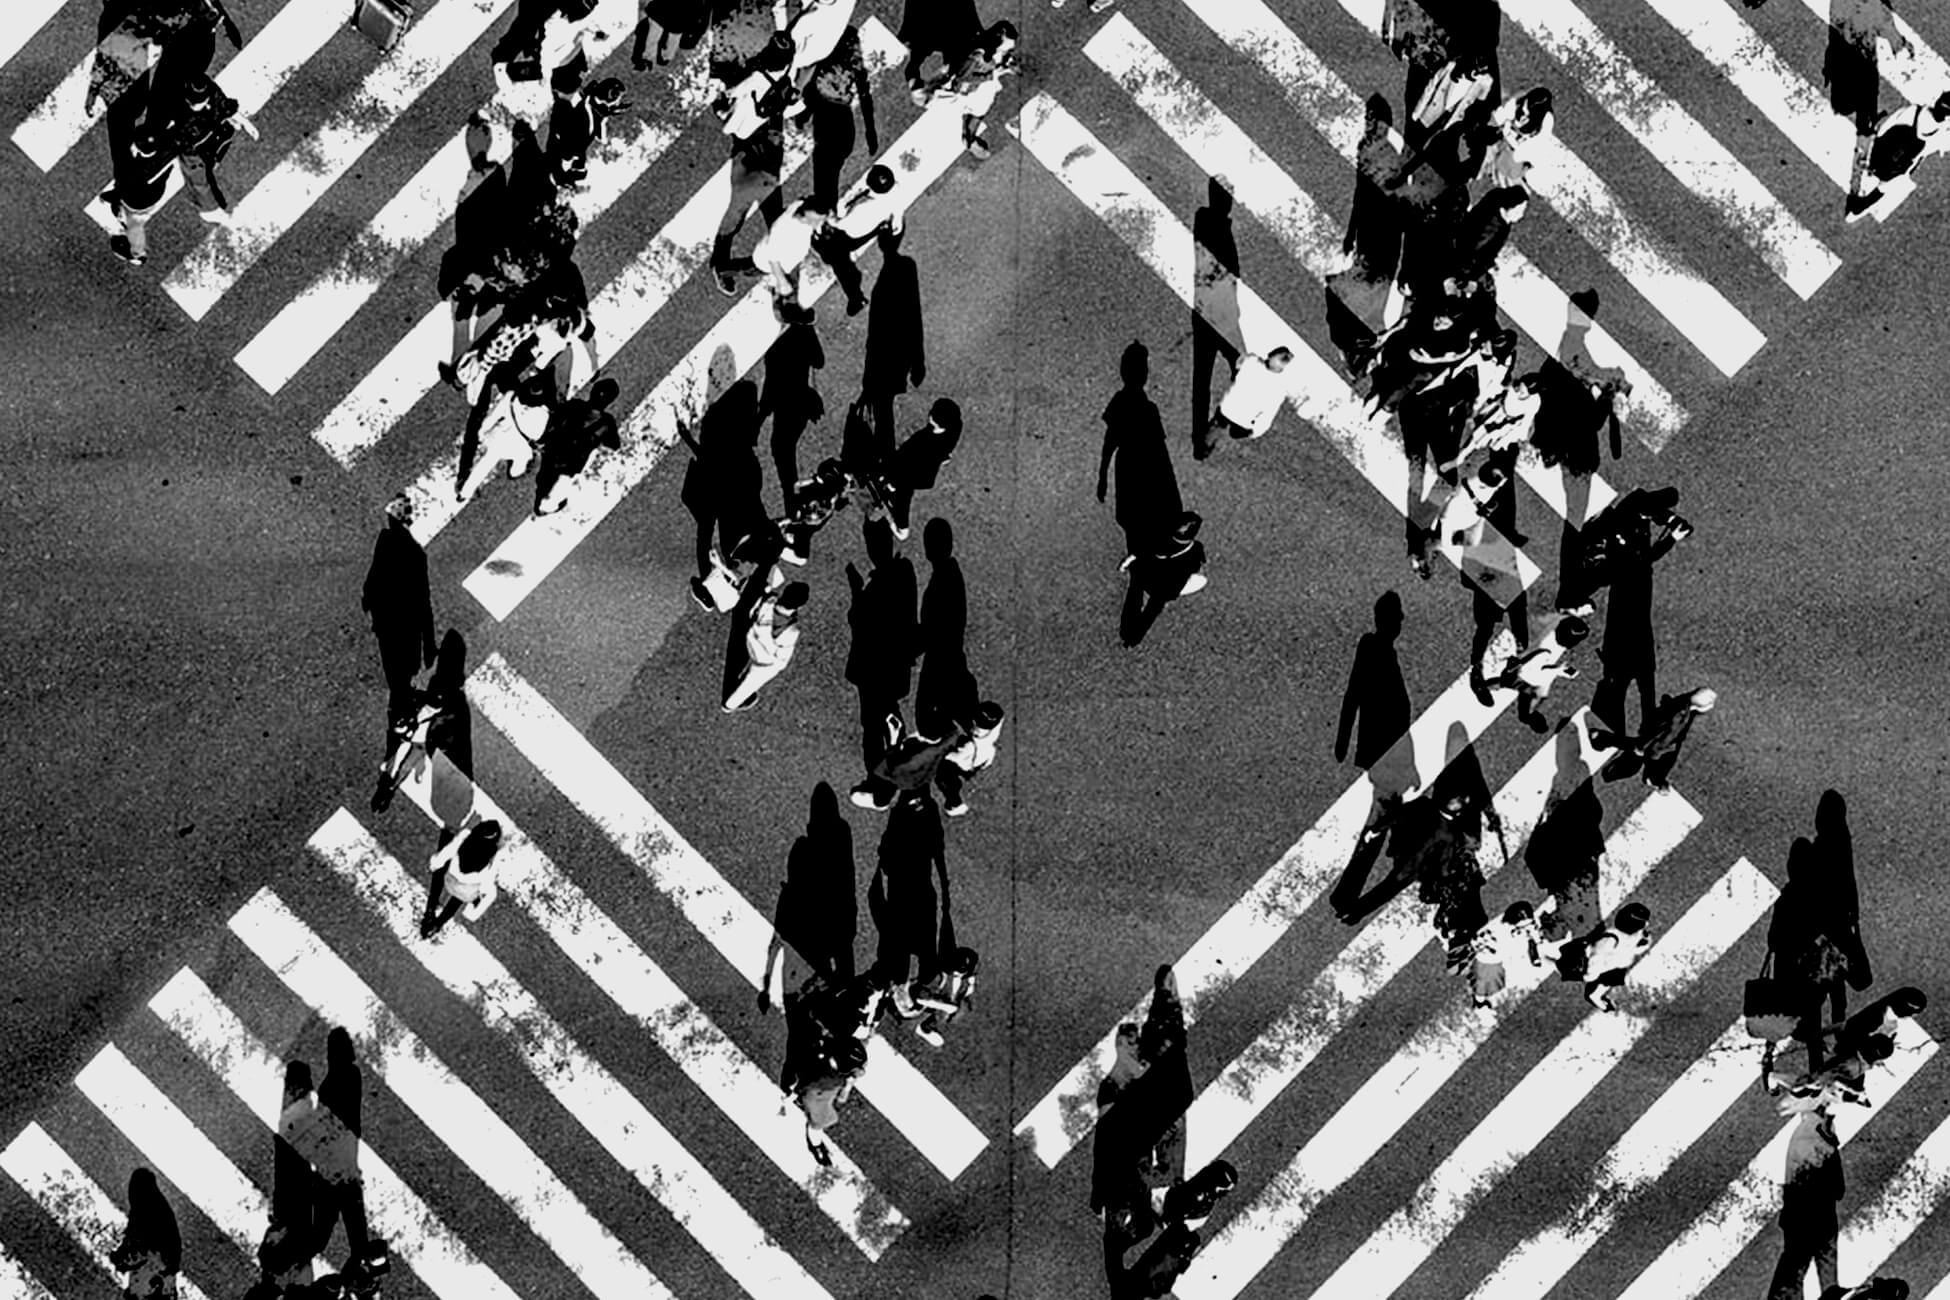 People crossing busy intersection